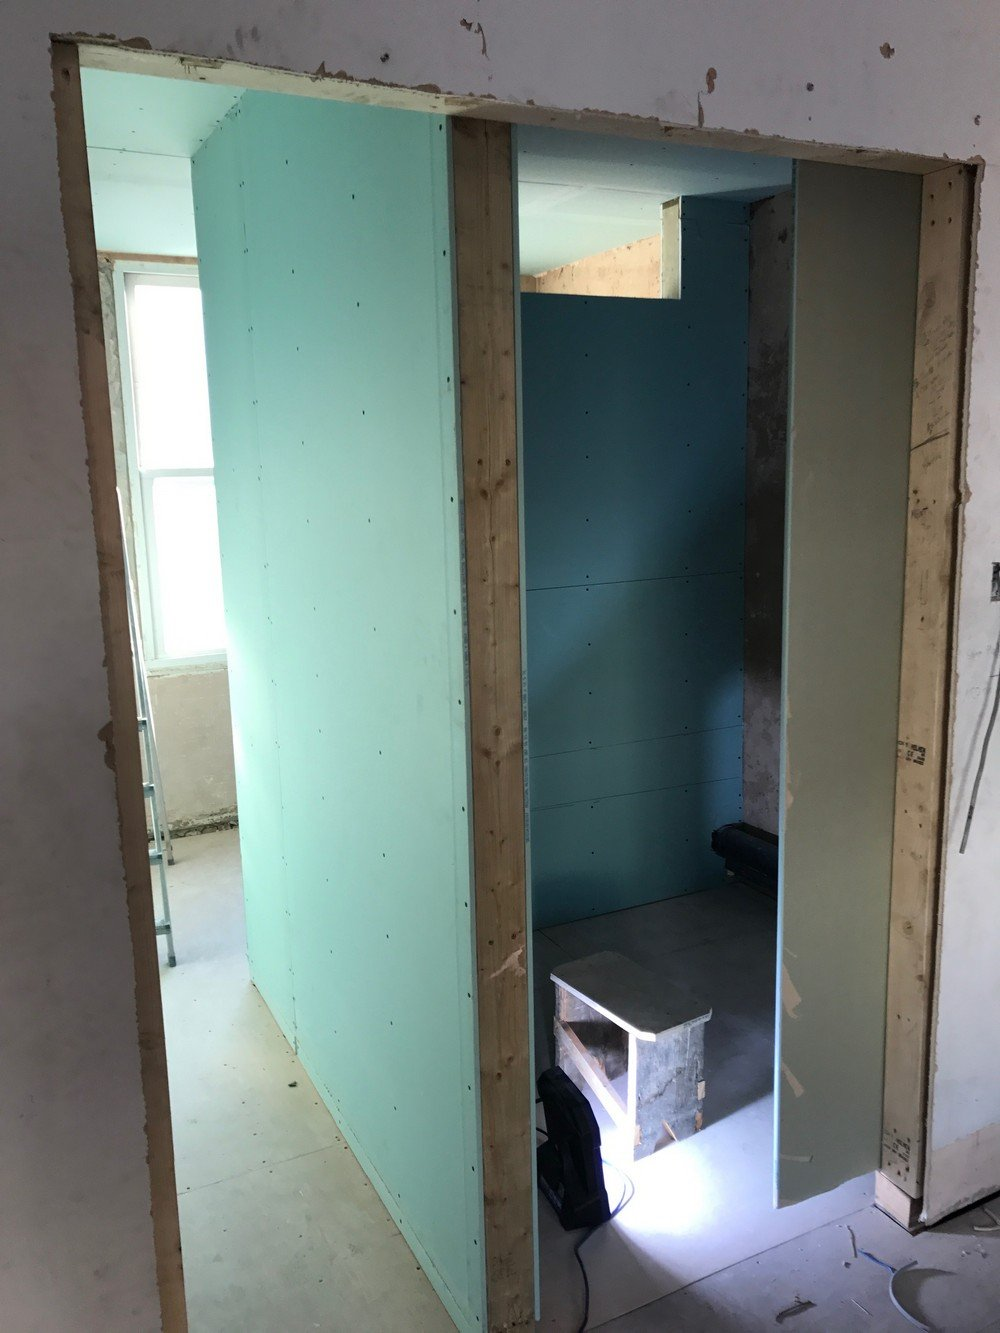 SW1V – Bathrooms, Kitchen, Flooring, Painting Decorating, Steels 1